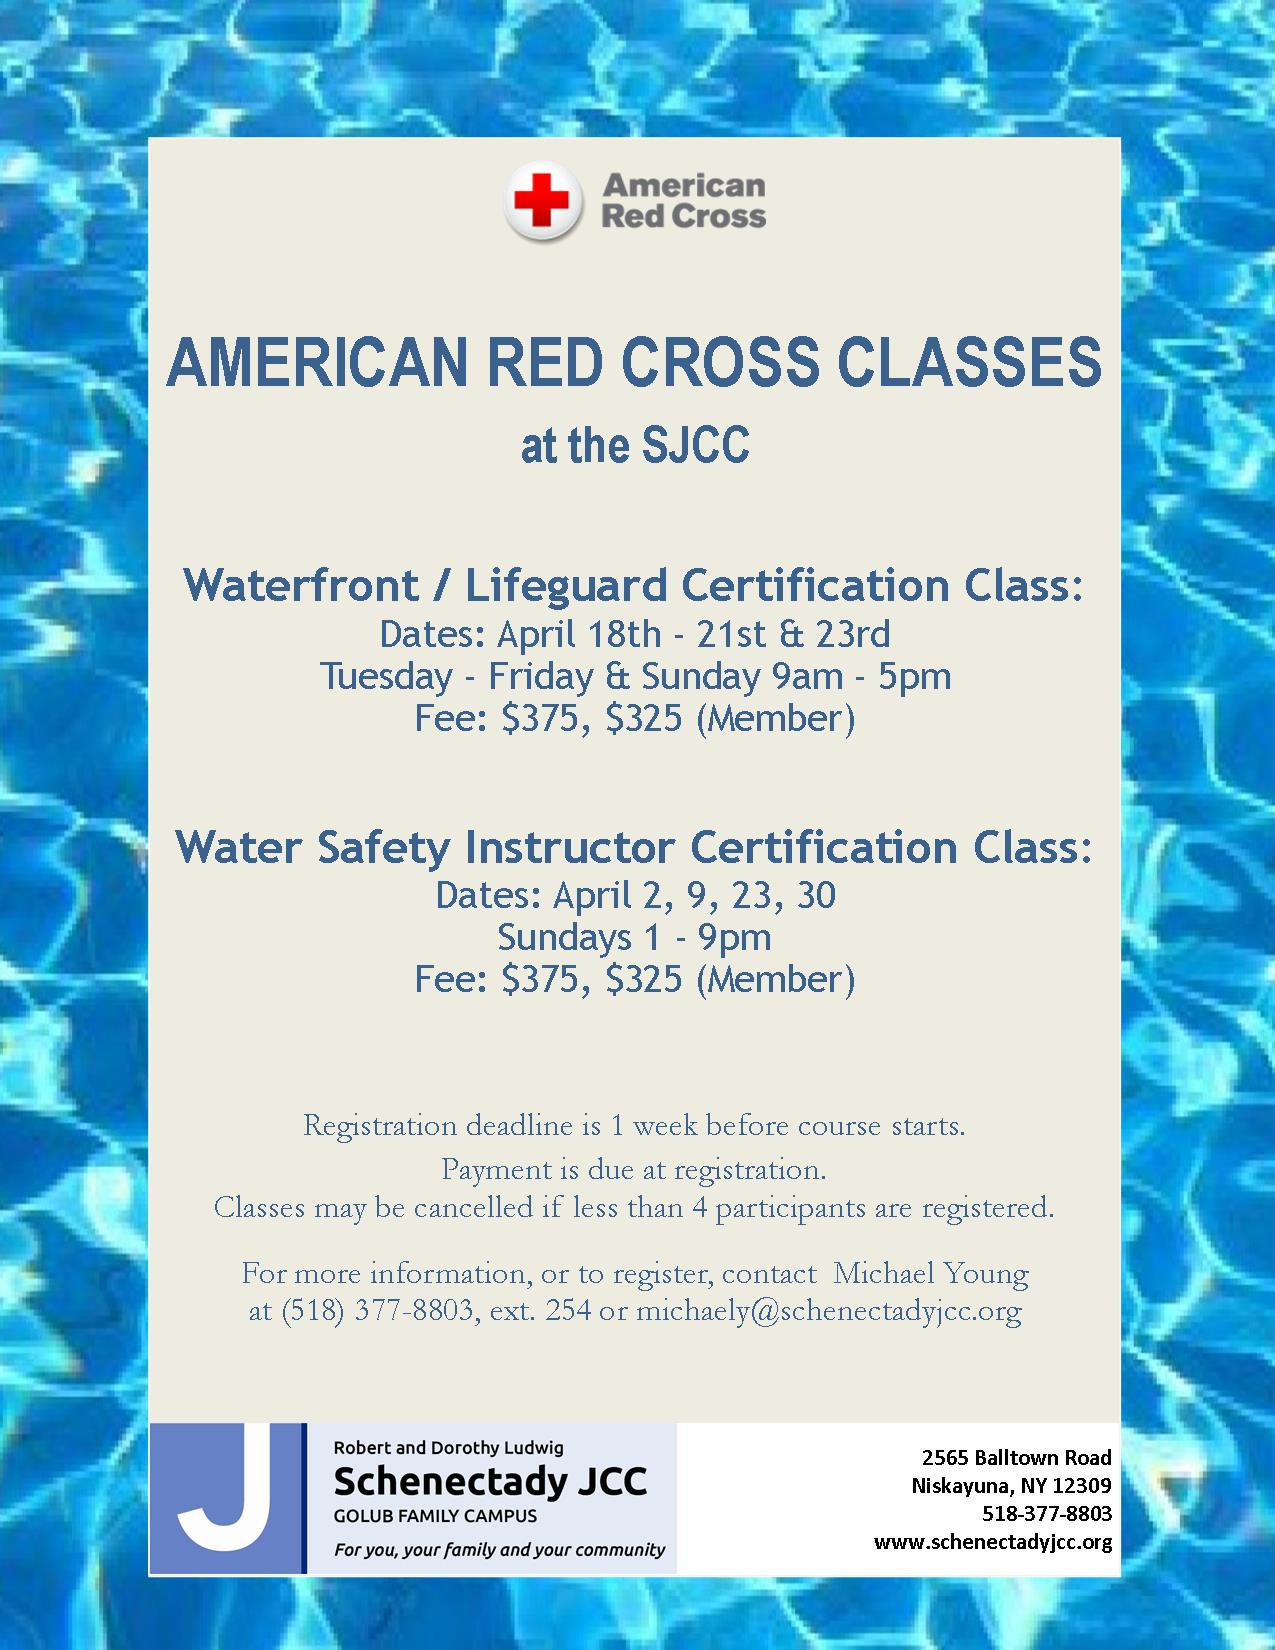 New photos of american red cross certification business cards swim instructor certificationalexablankcertificate swim instructor certificationalexablankcertificate from american red cross certification xflitez Image collections